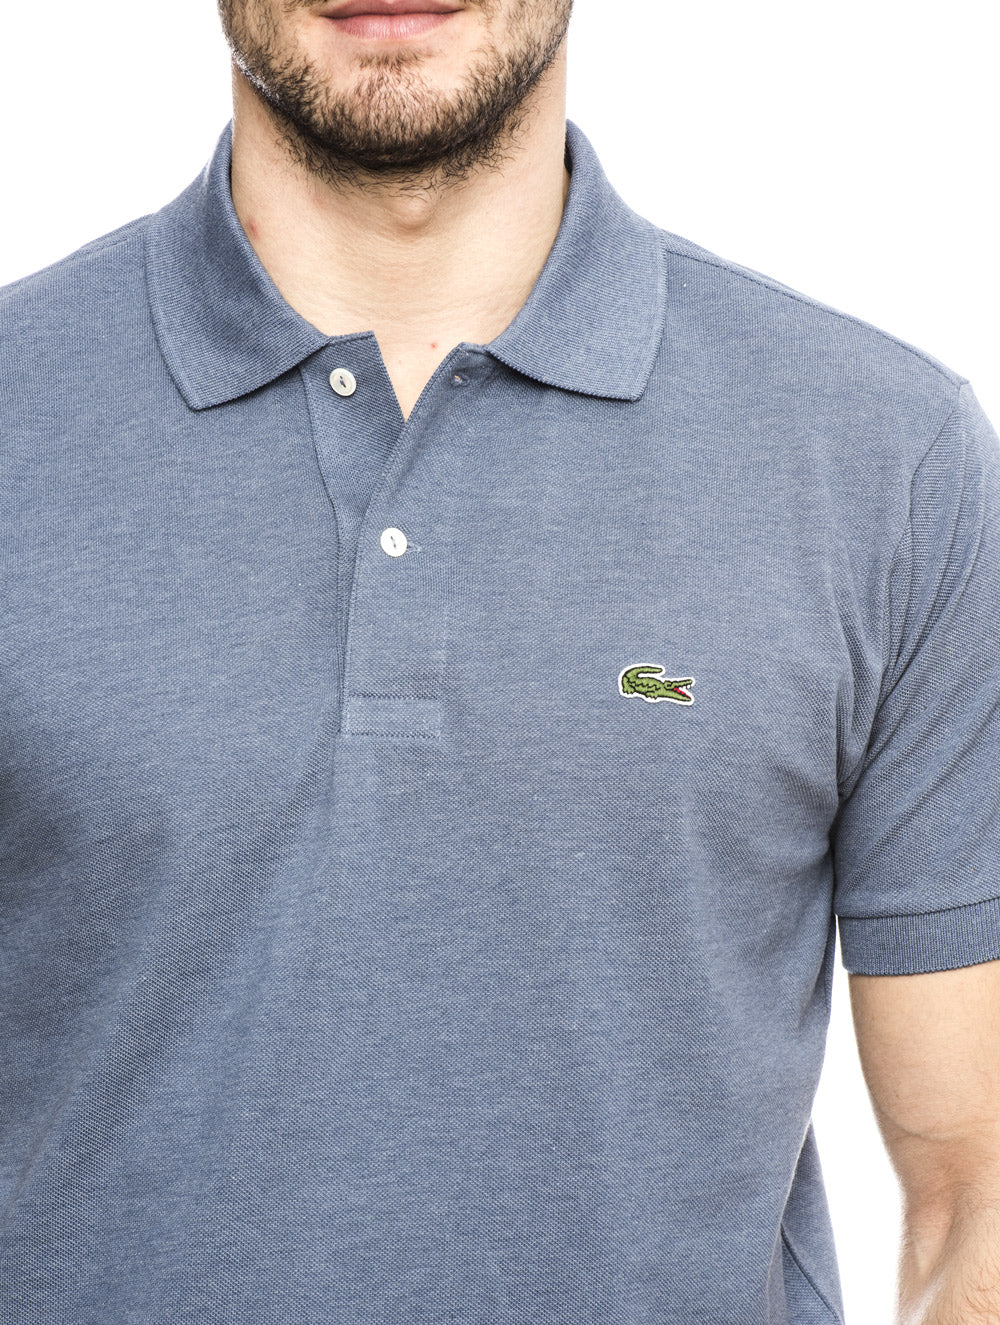 LIGHT BLUE LACOSTE POLO